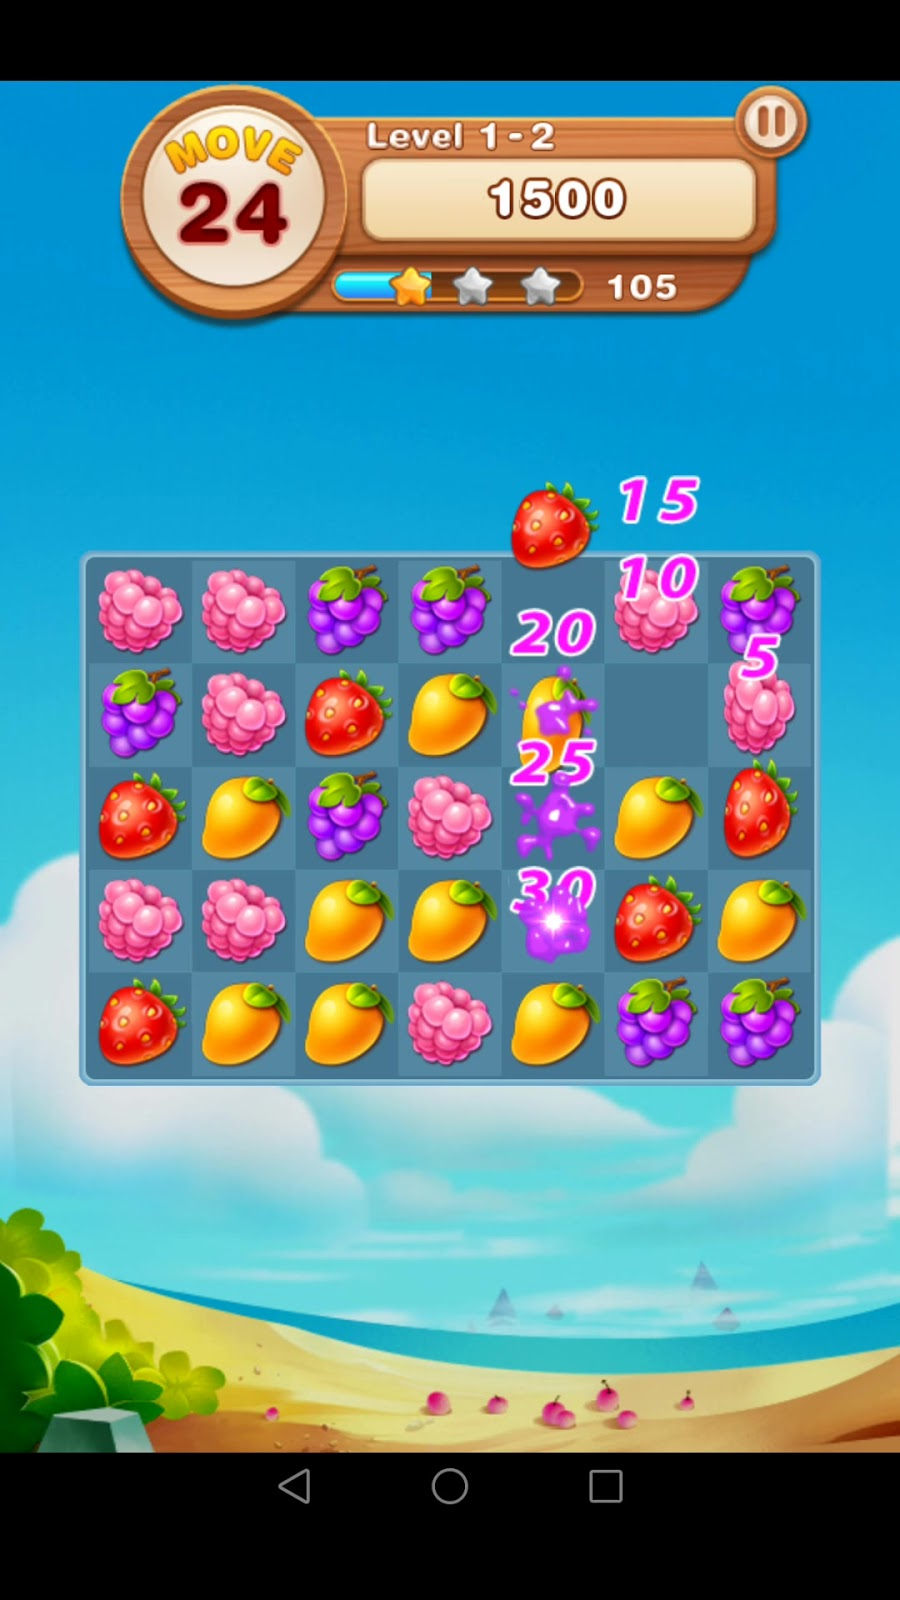 Fruit splash story -  Fruit Splash Pop Game Review From Official Match_three Casual Collect Fruits By Linking Fresh Fruits Into Chains Betty S License All Photos And